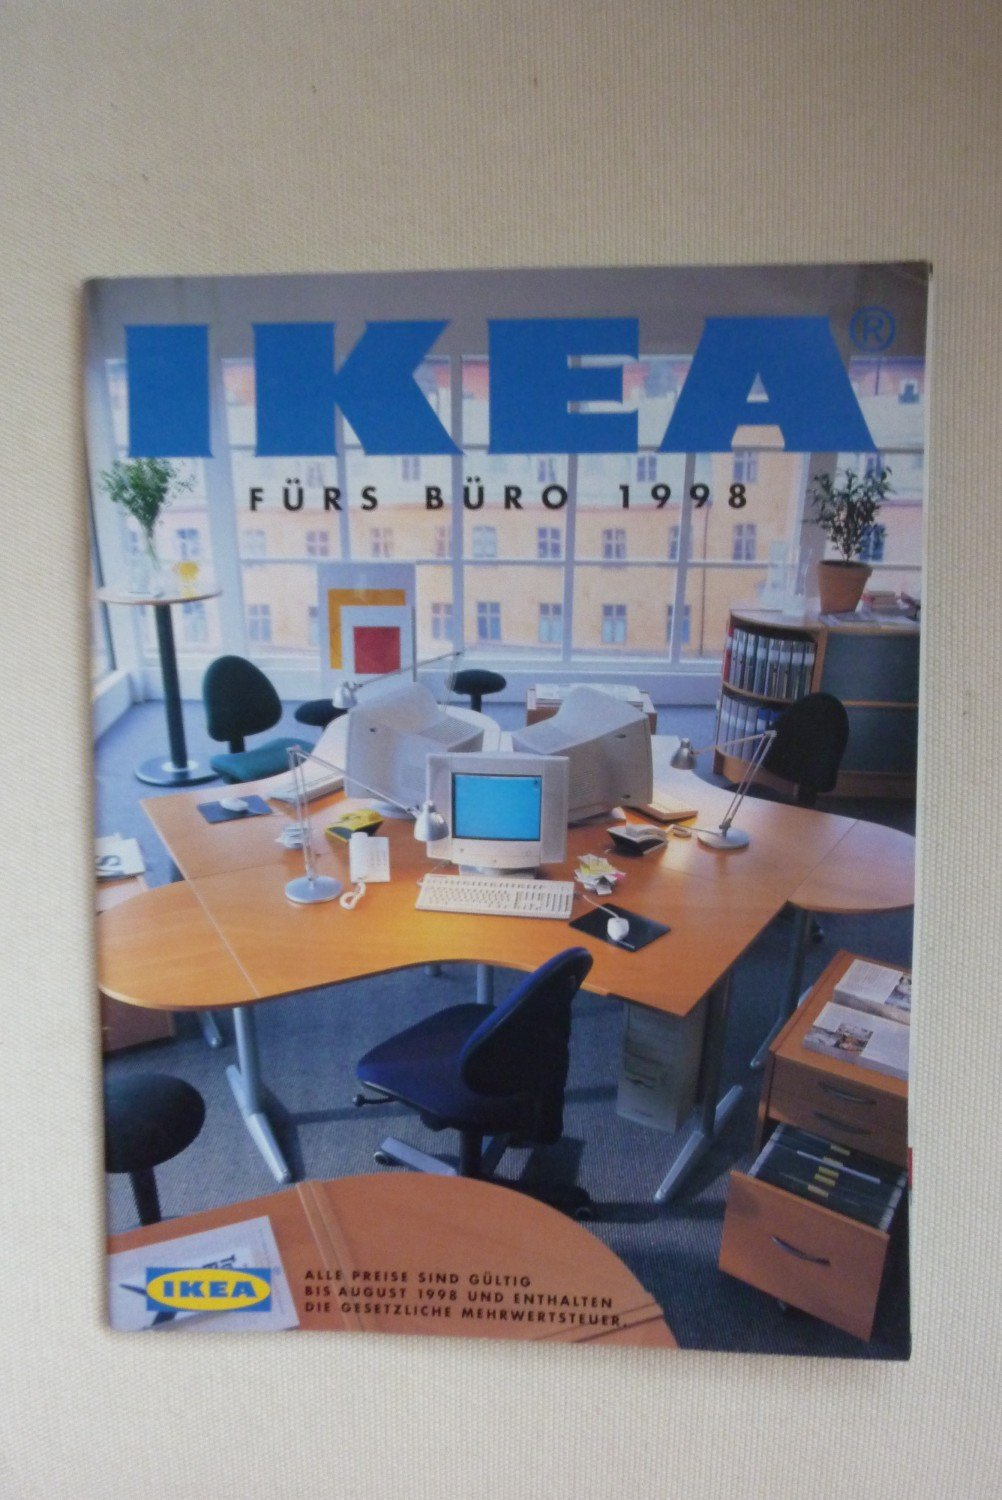 ikea b rom bel katalog 1998 ikea f rs b ro 1998. Black Bedroom Furniture Sets. Home Design Ideas